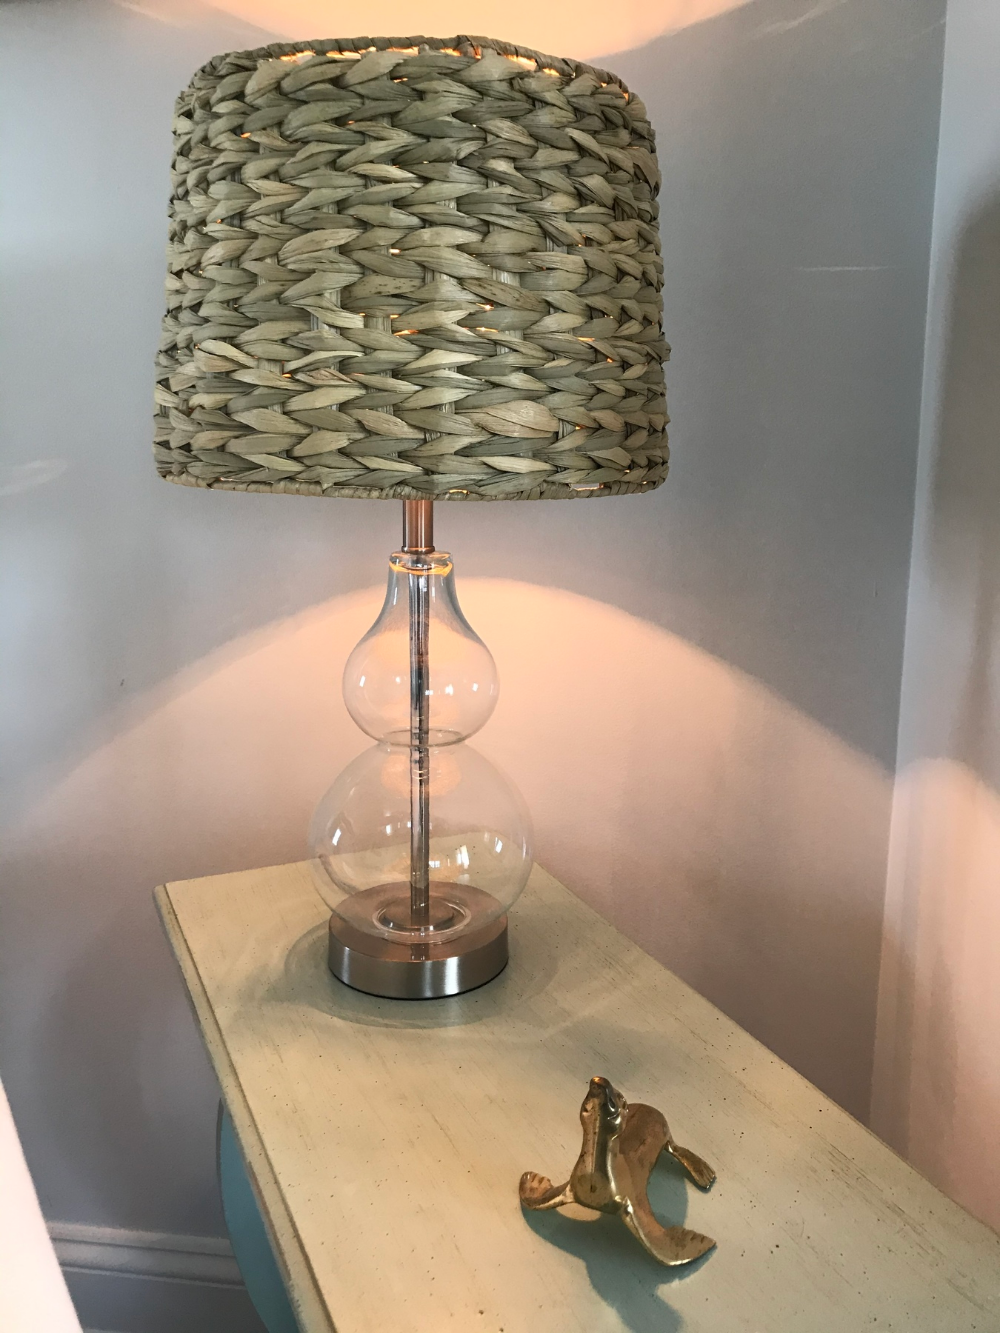 Woven Seagrass Drum Shade 10x12x8.25 (Spider) - #U0943   Lamps Plus